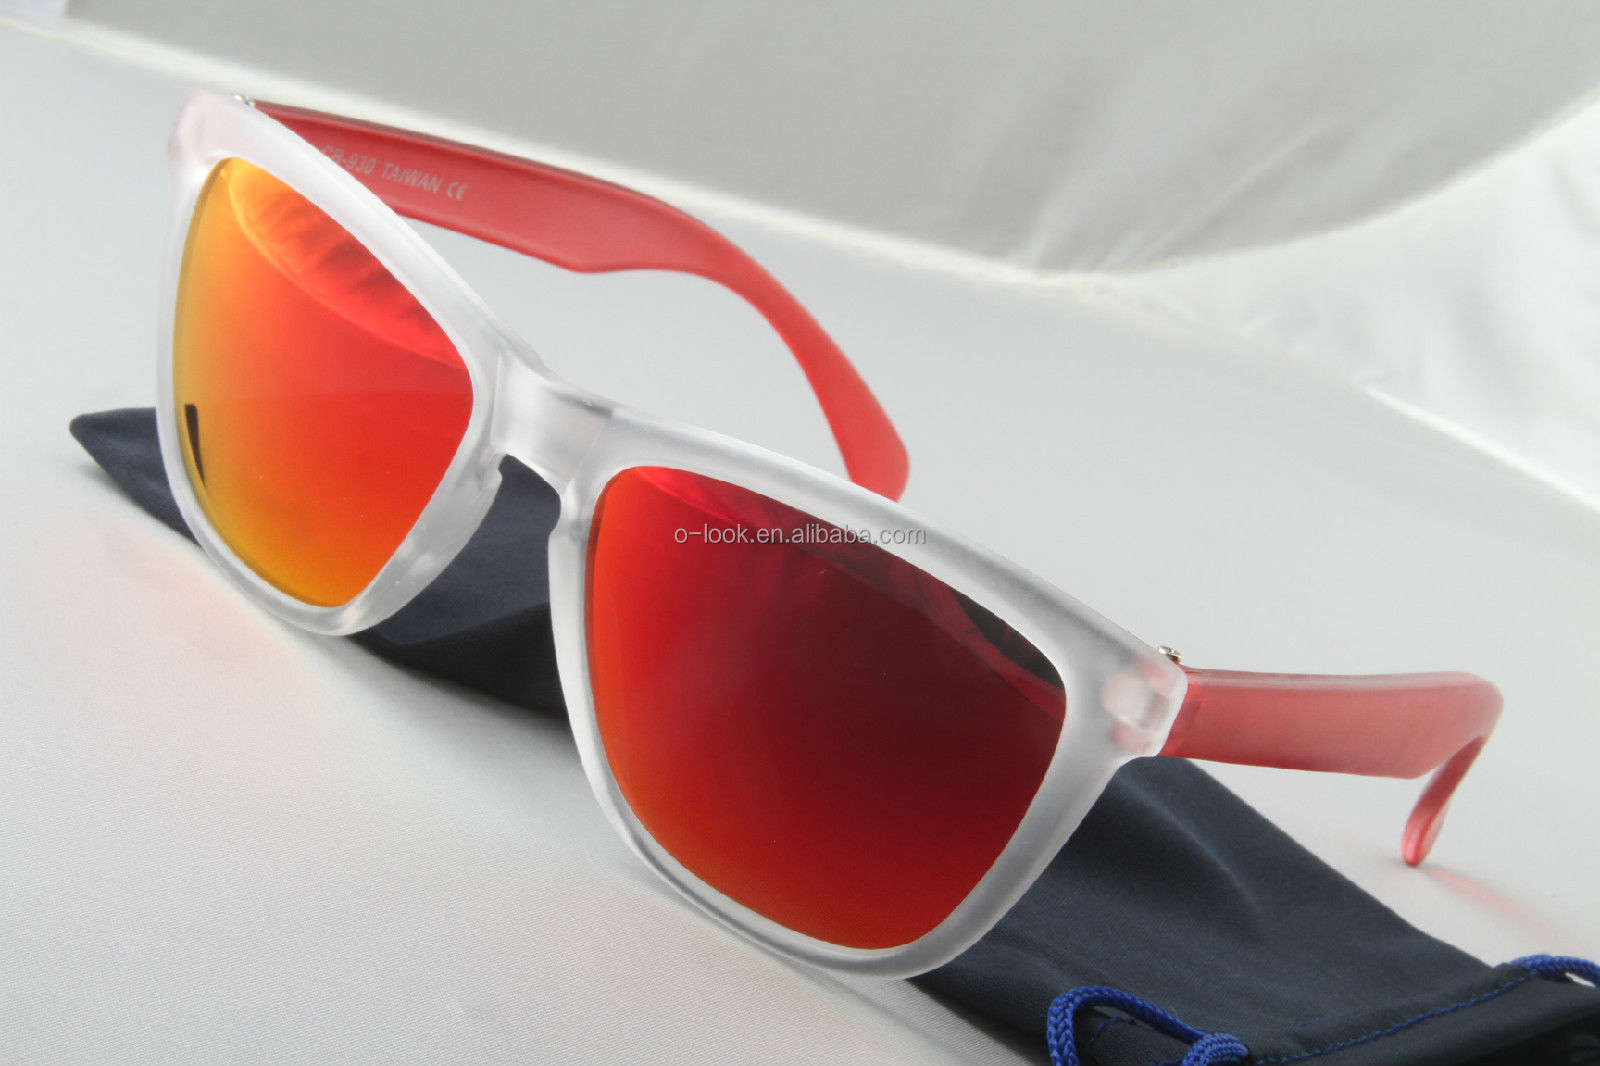 Posts about ray ban sunglasses on sale usa written by raybansunglassessaleblog.